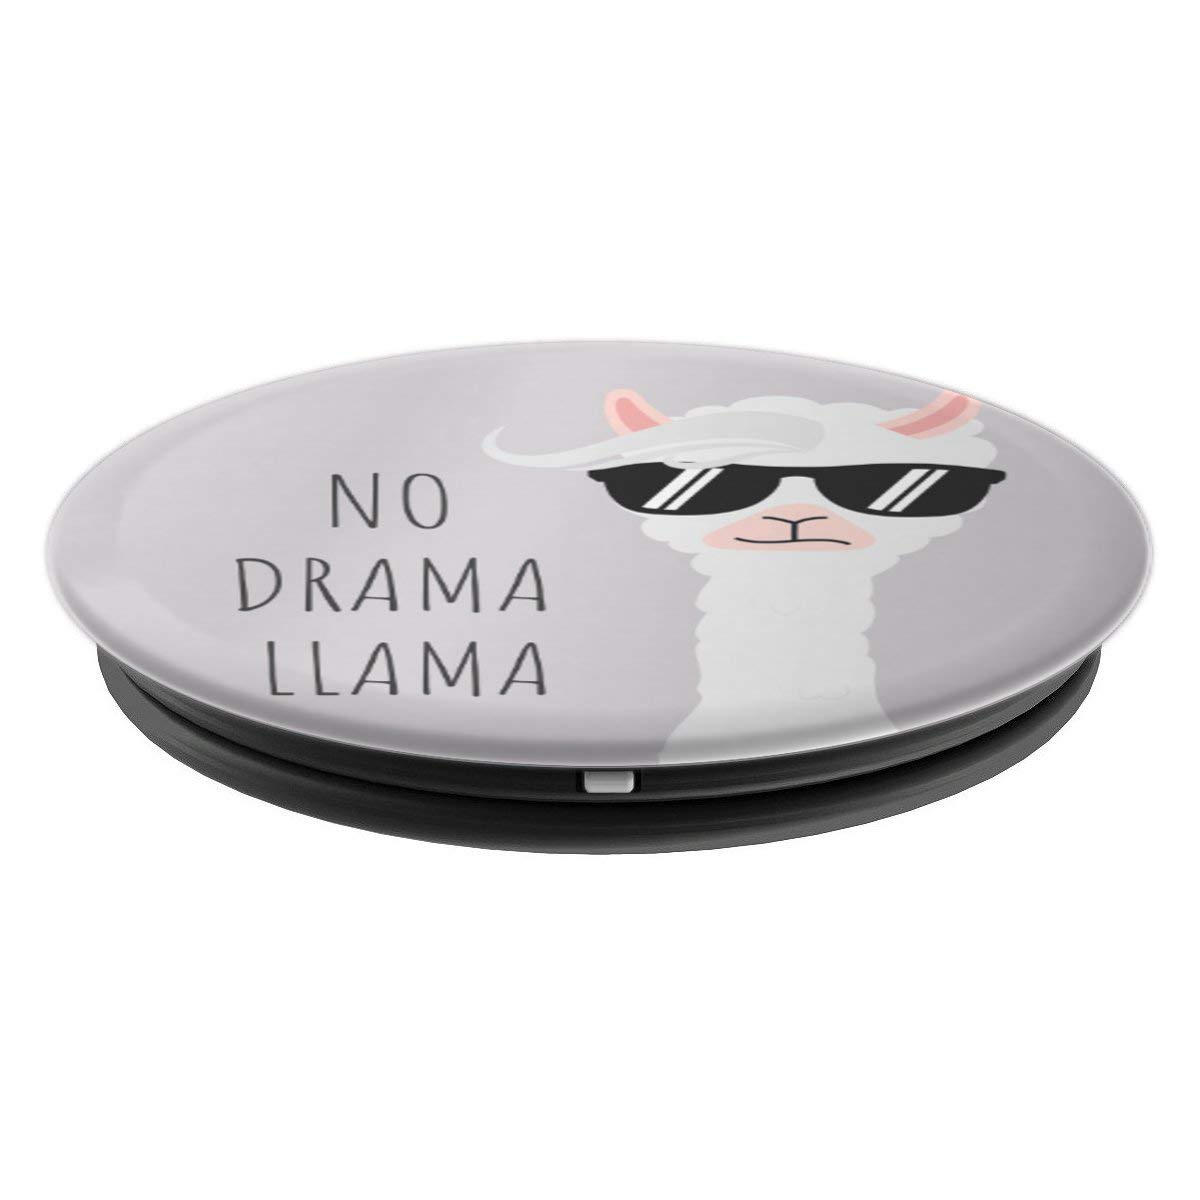 Amazon.com: No Drama Llama Pop Socket - PopSockets Grip and Stand for Phones and Tablets: Cell Phones & Accessories